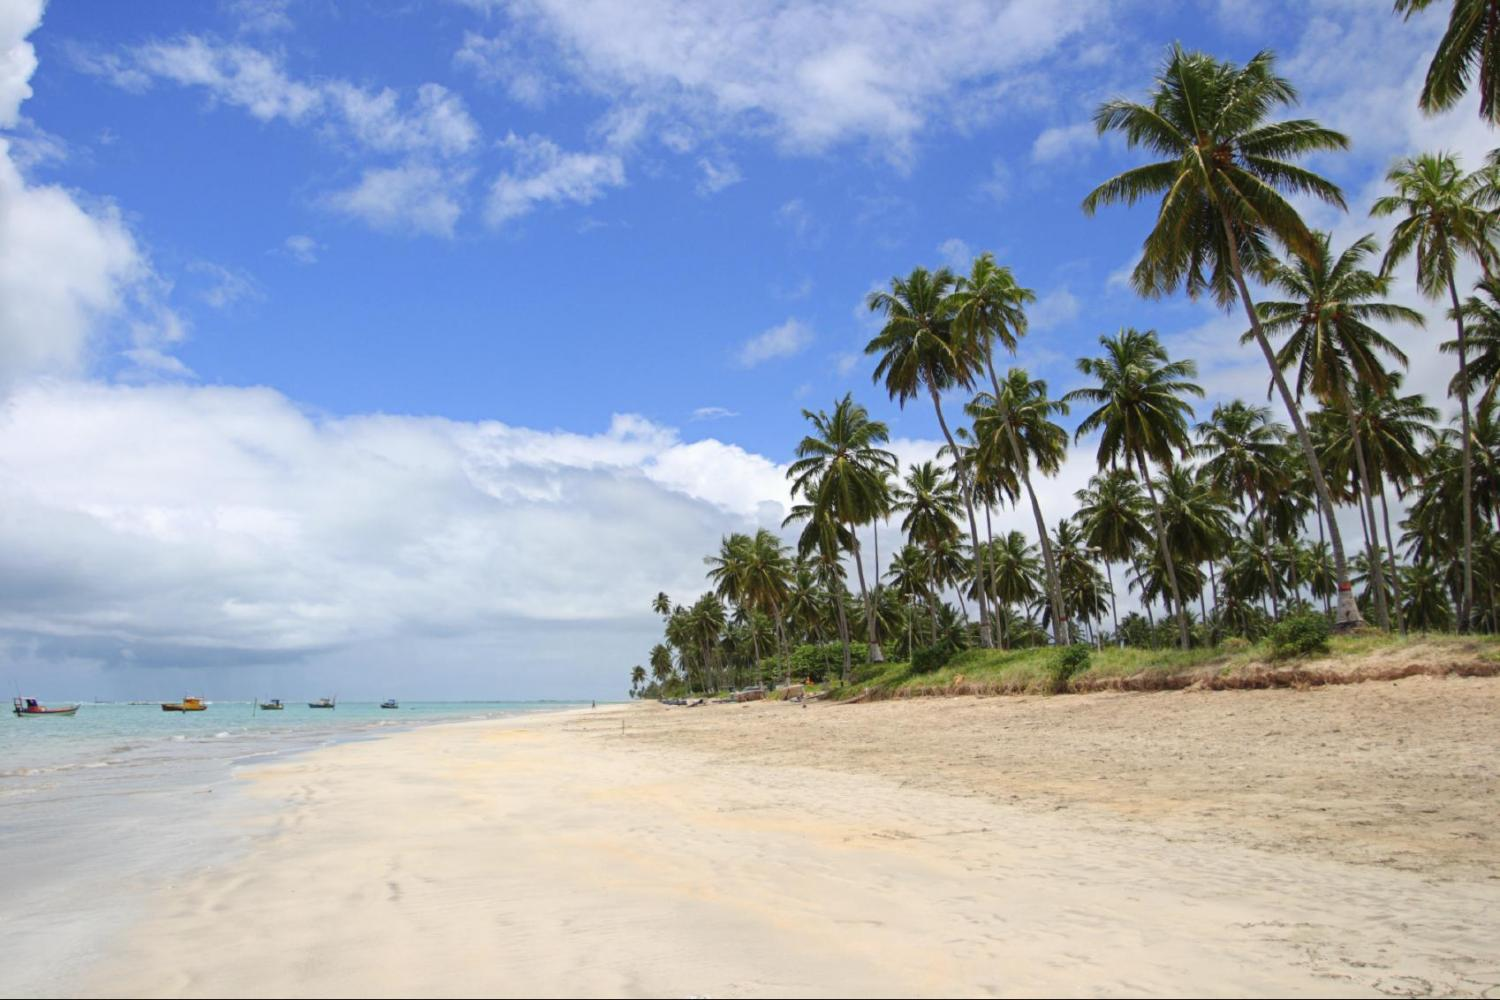 Wander amongst lush coconut groves on the beach paradise of Gunga